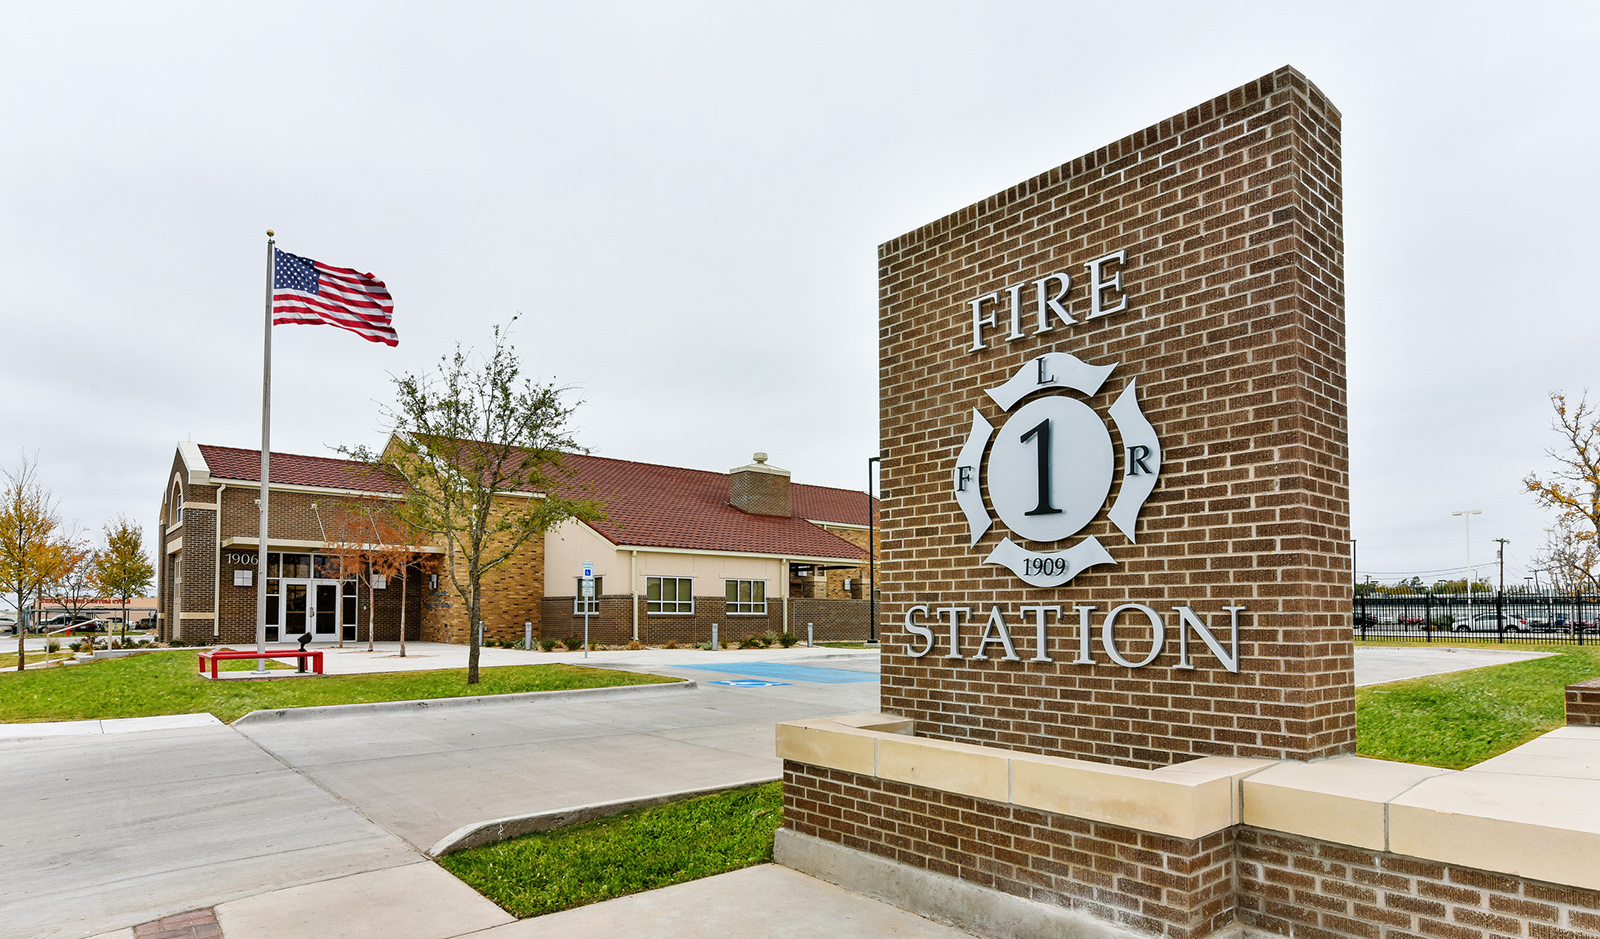 City of Lubbock   Fire Stations no. 1, 16, & 19